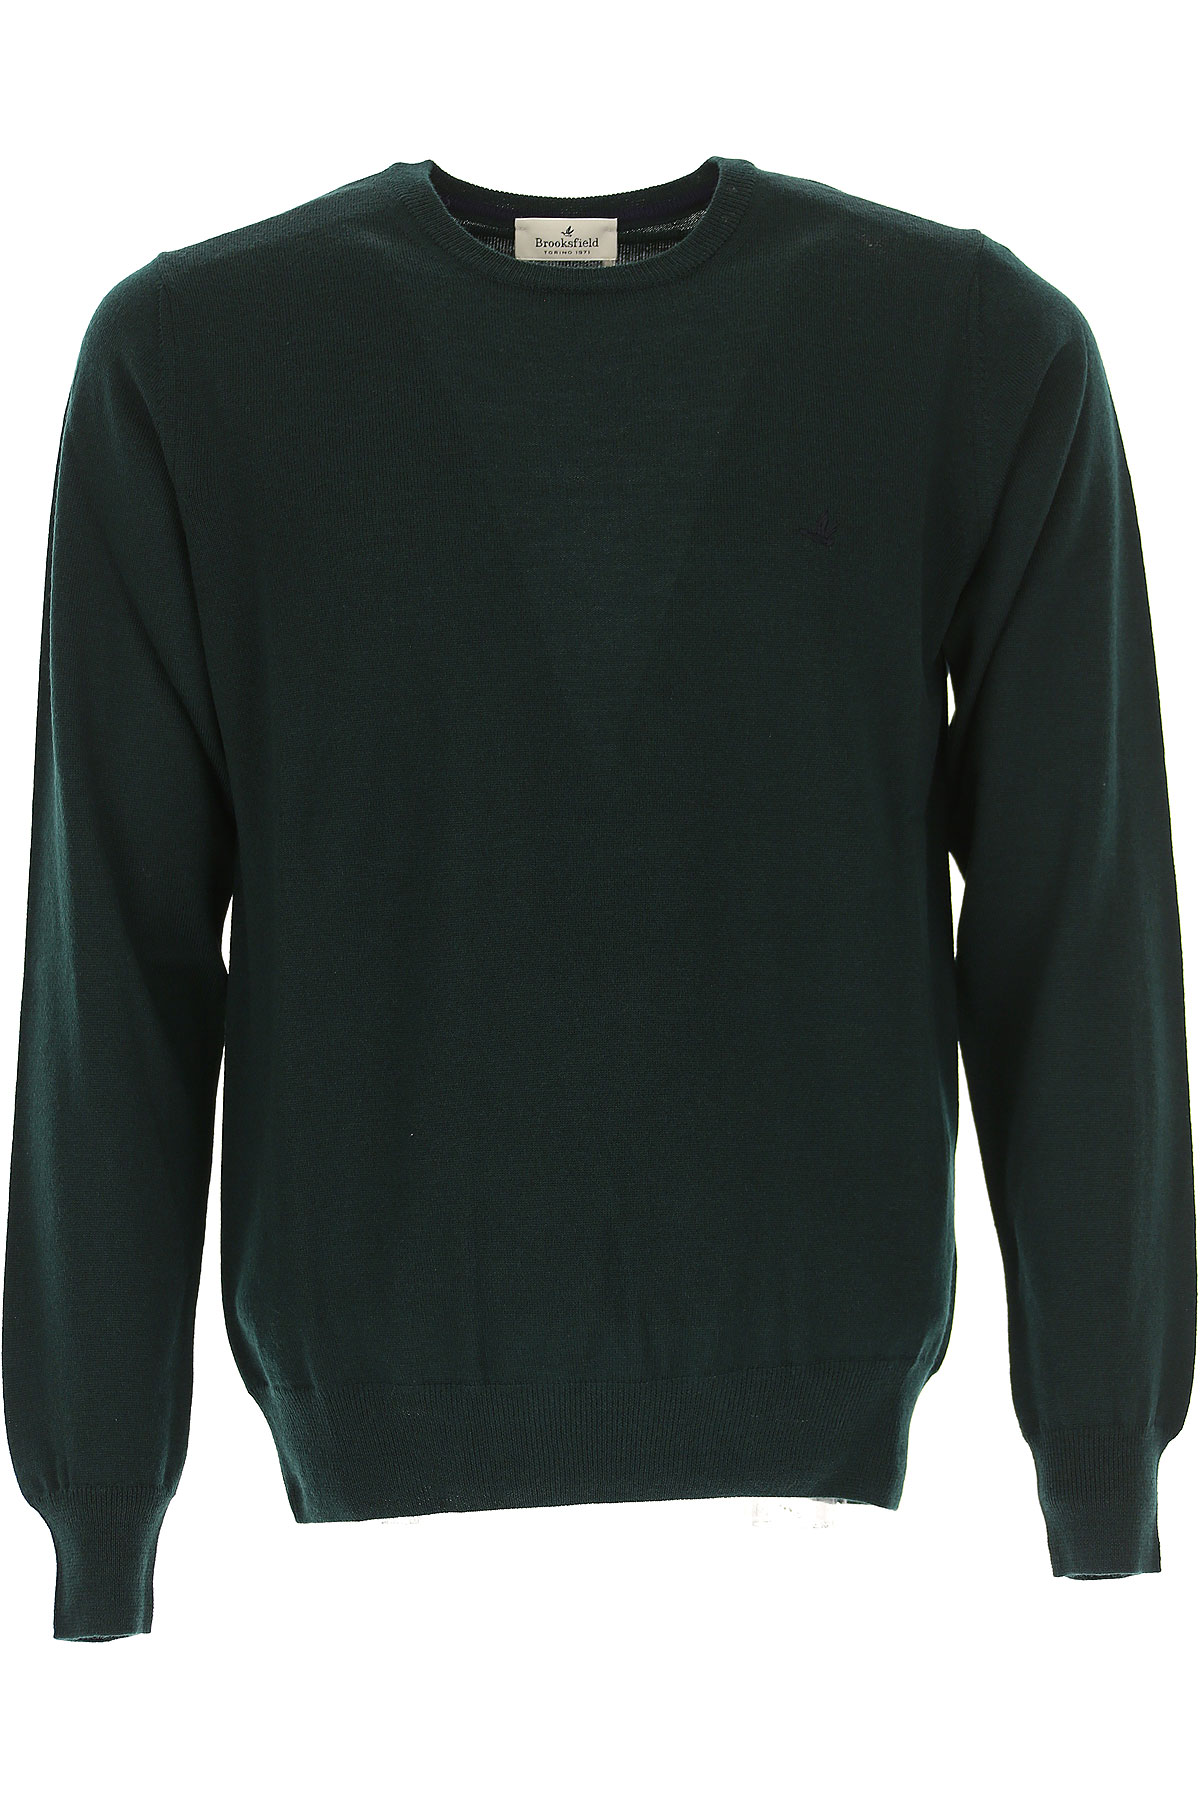 Image of Brooksfield Sweater for Men Jumper, Dark Green, Virgin wool, 2017, L M